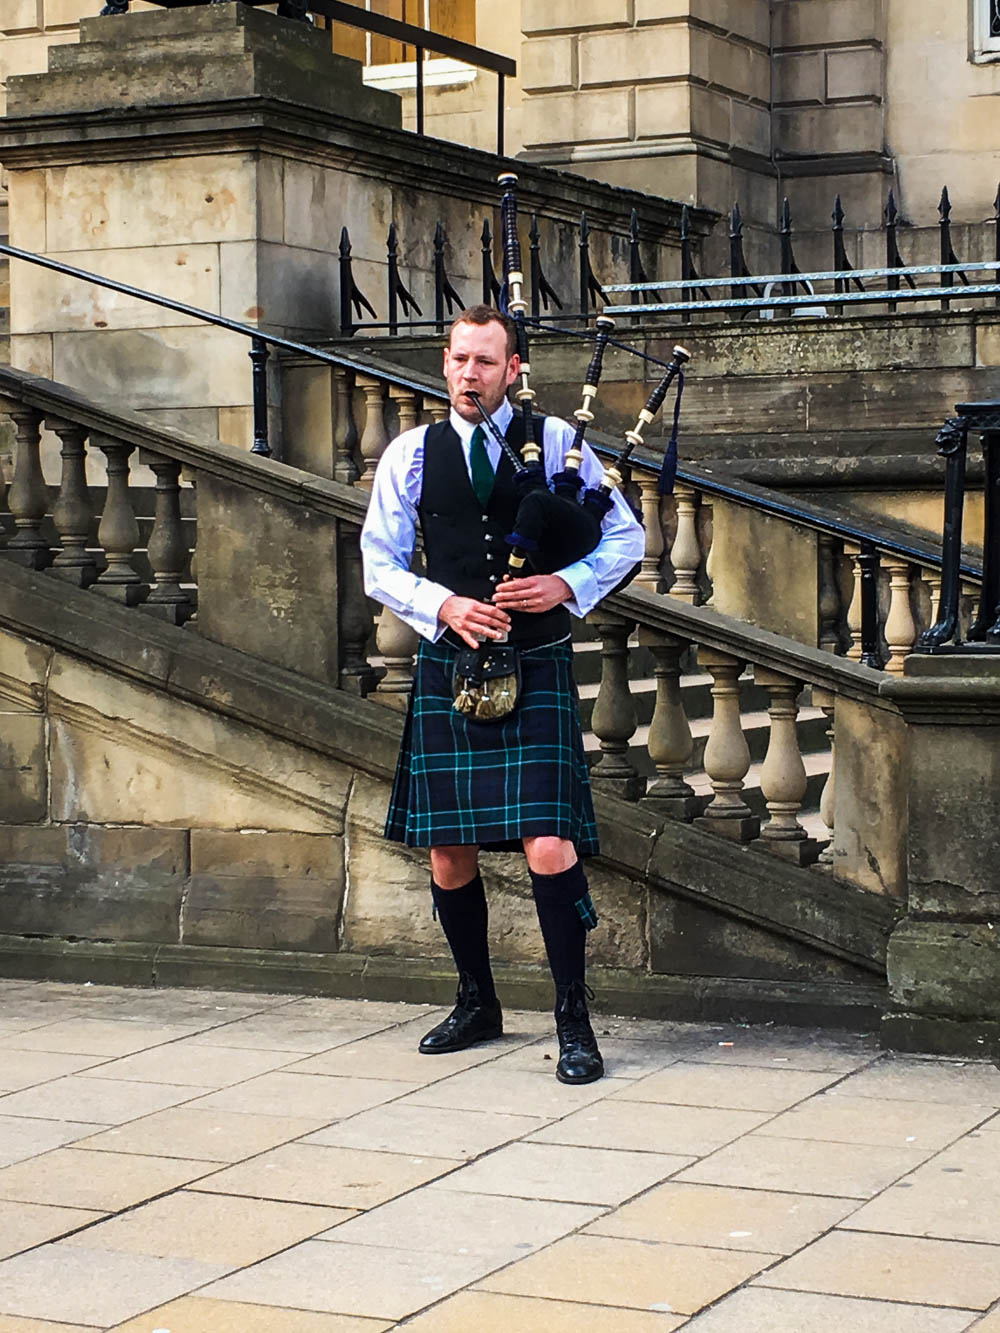 Scottish man and a bagpipe